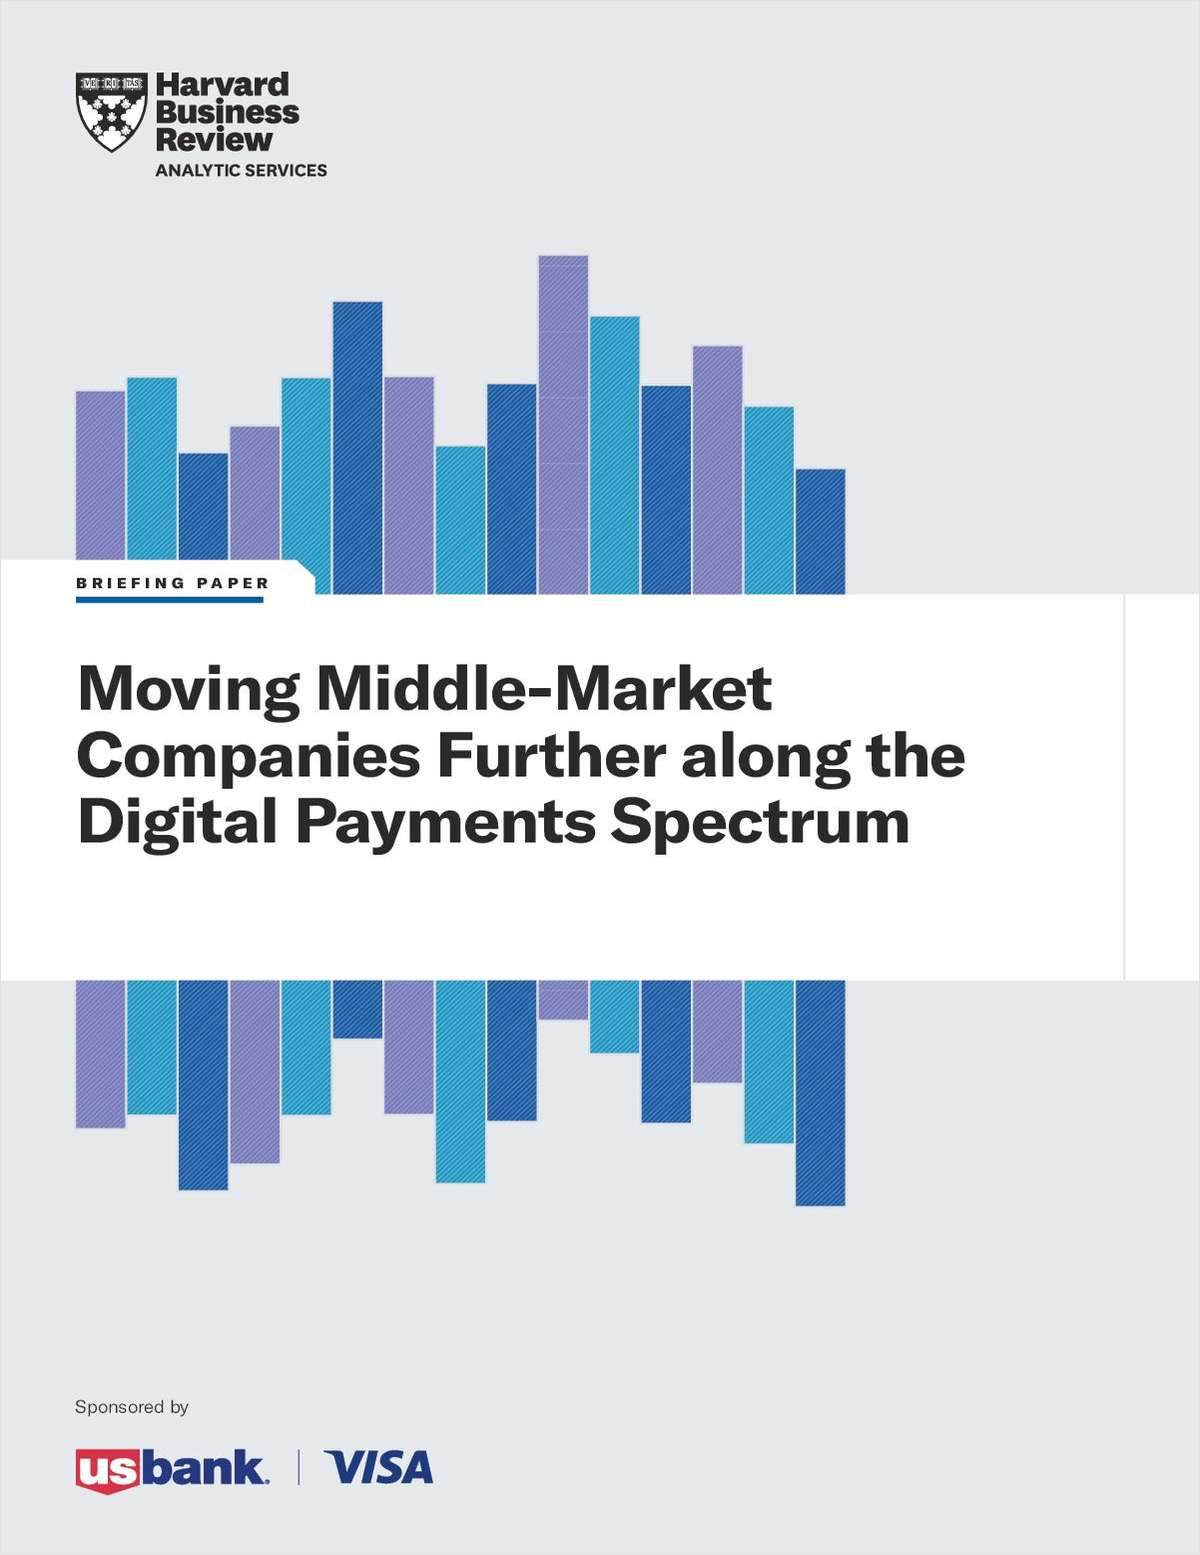 Moving Middle-Market Companies Further Along the Digital Payments Spectrum